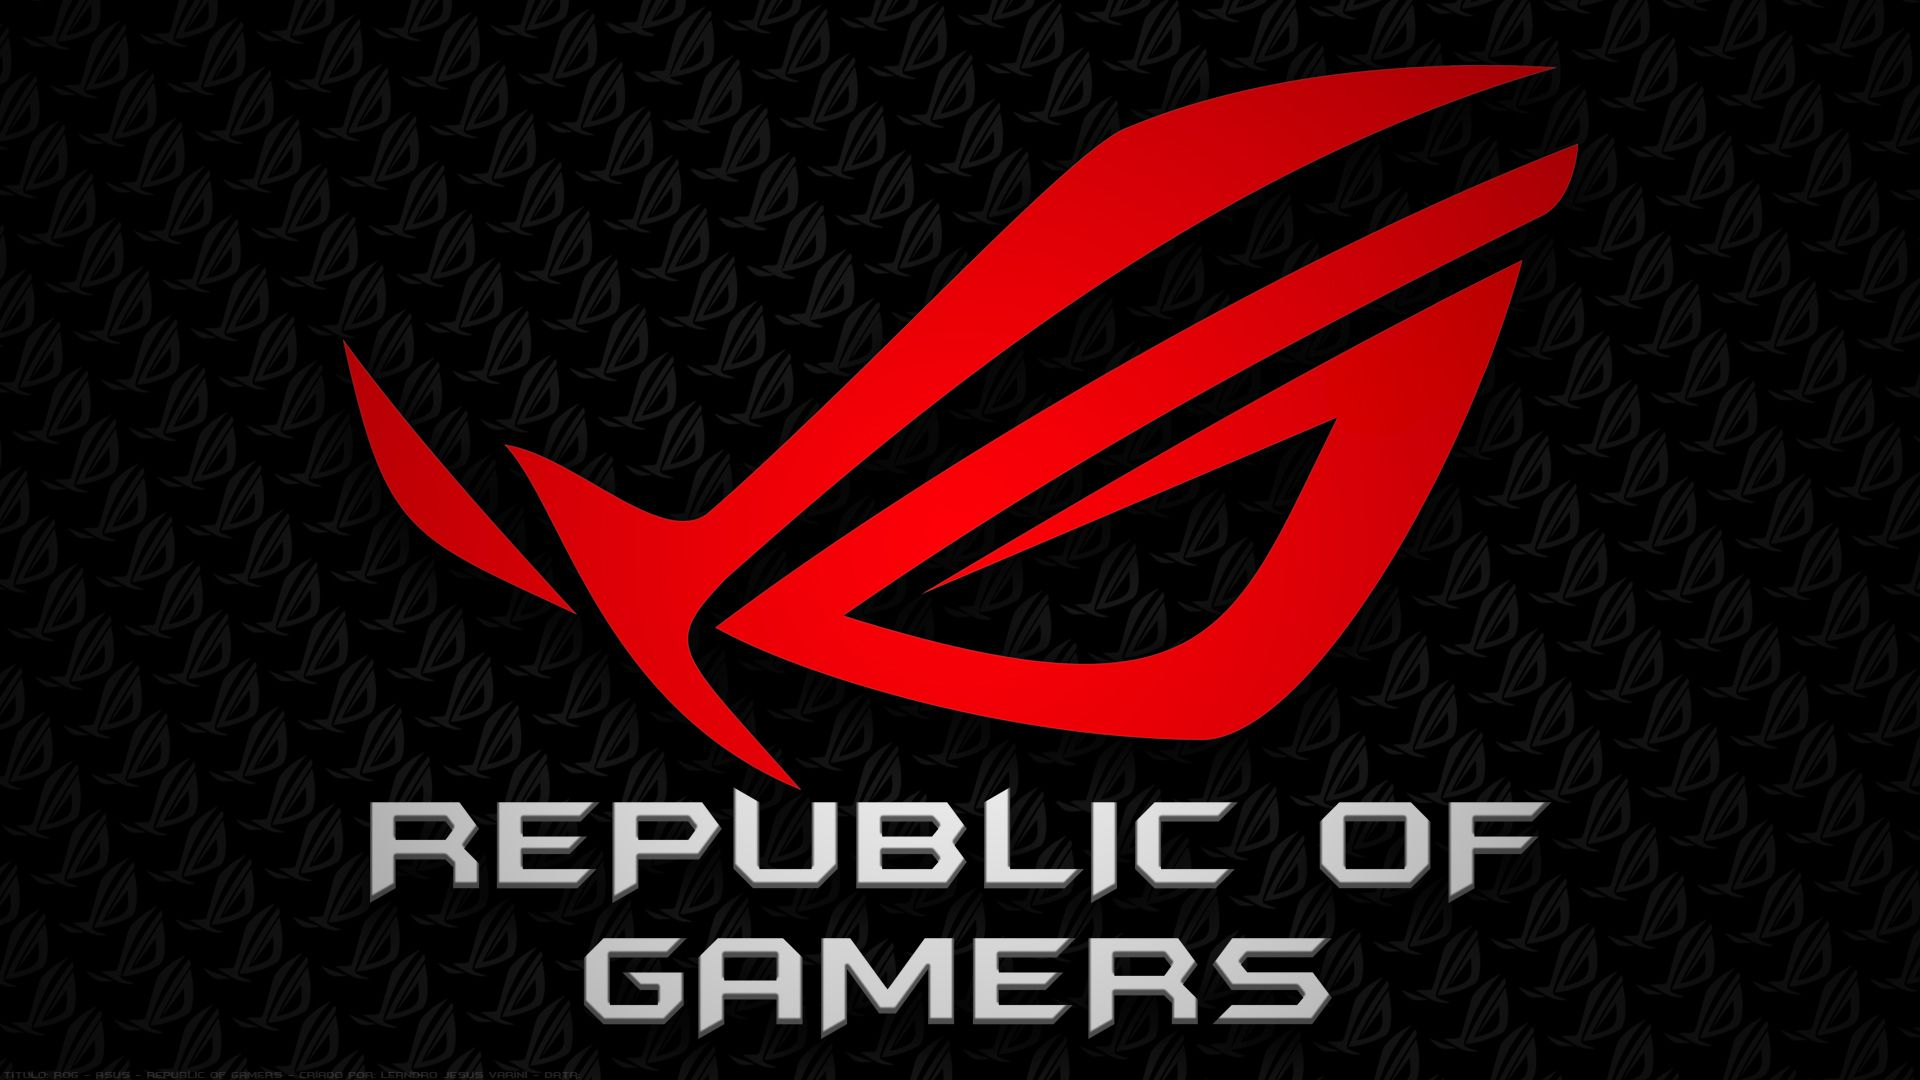 The Republic Of Gamers Gamers In 2019 Pinterest Wallpaper